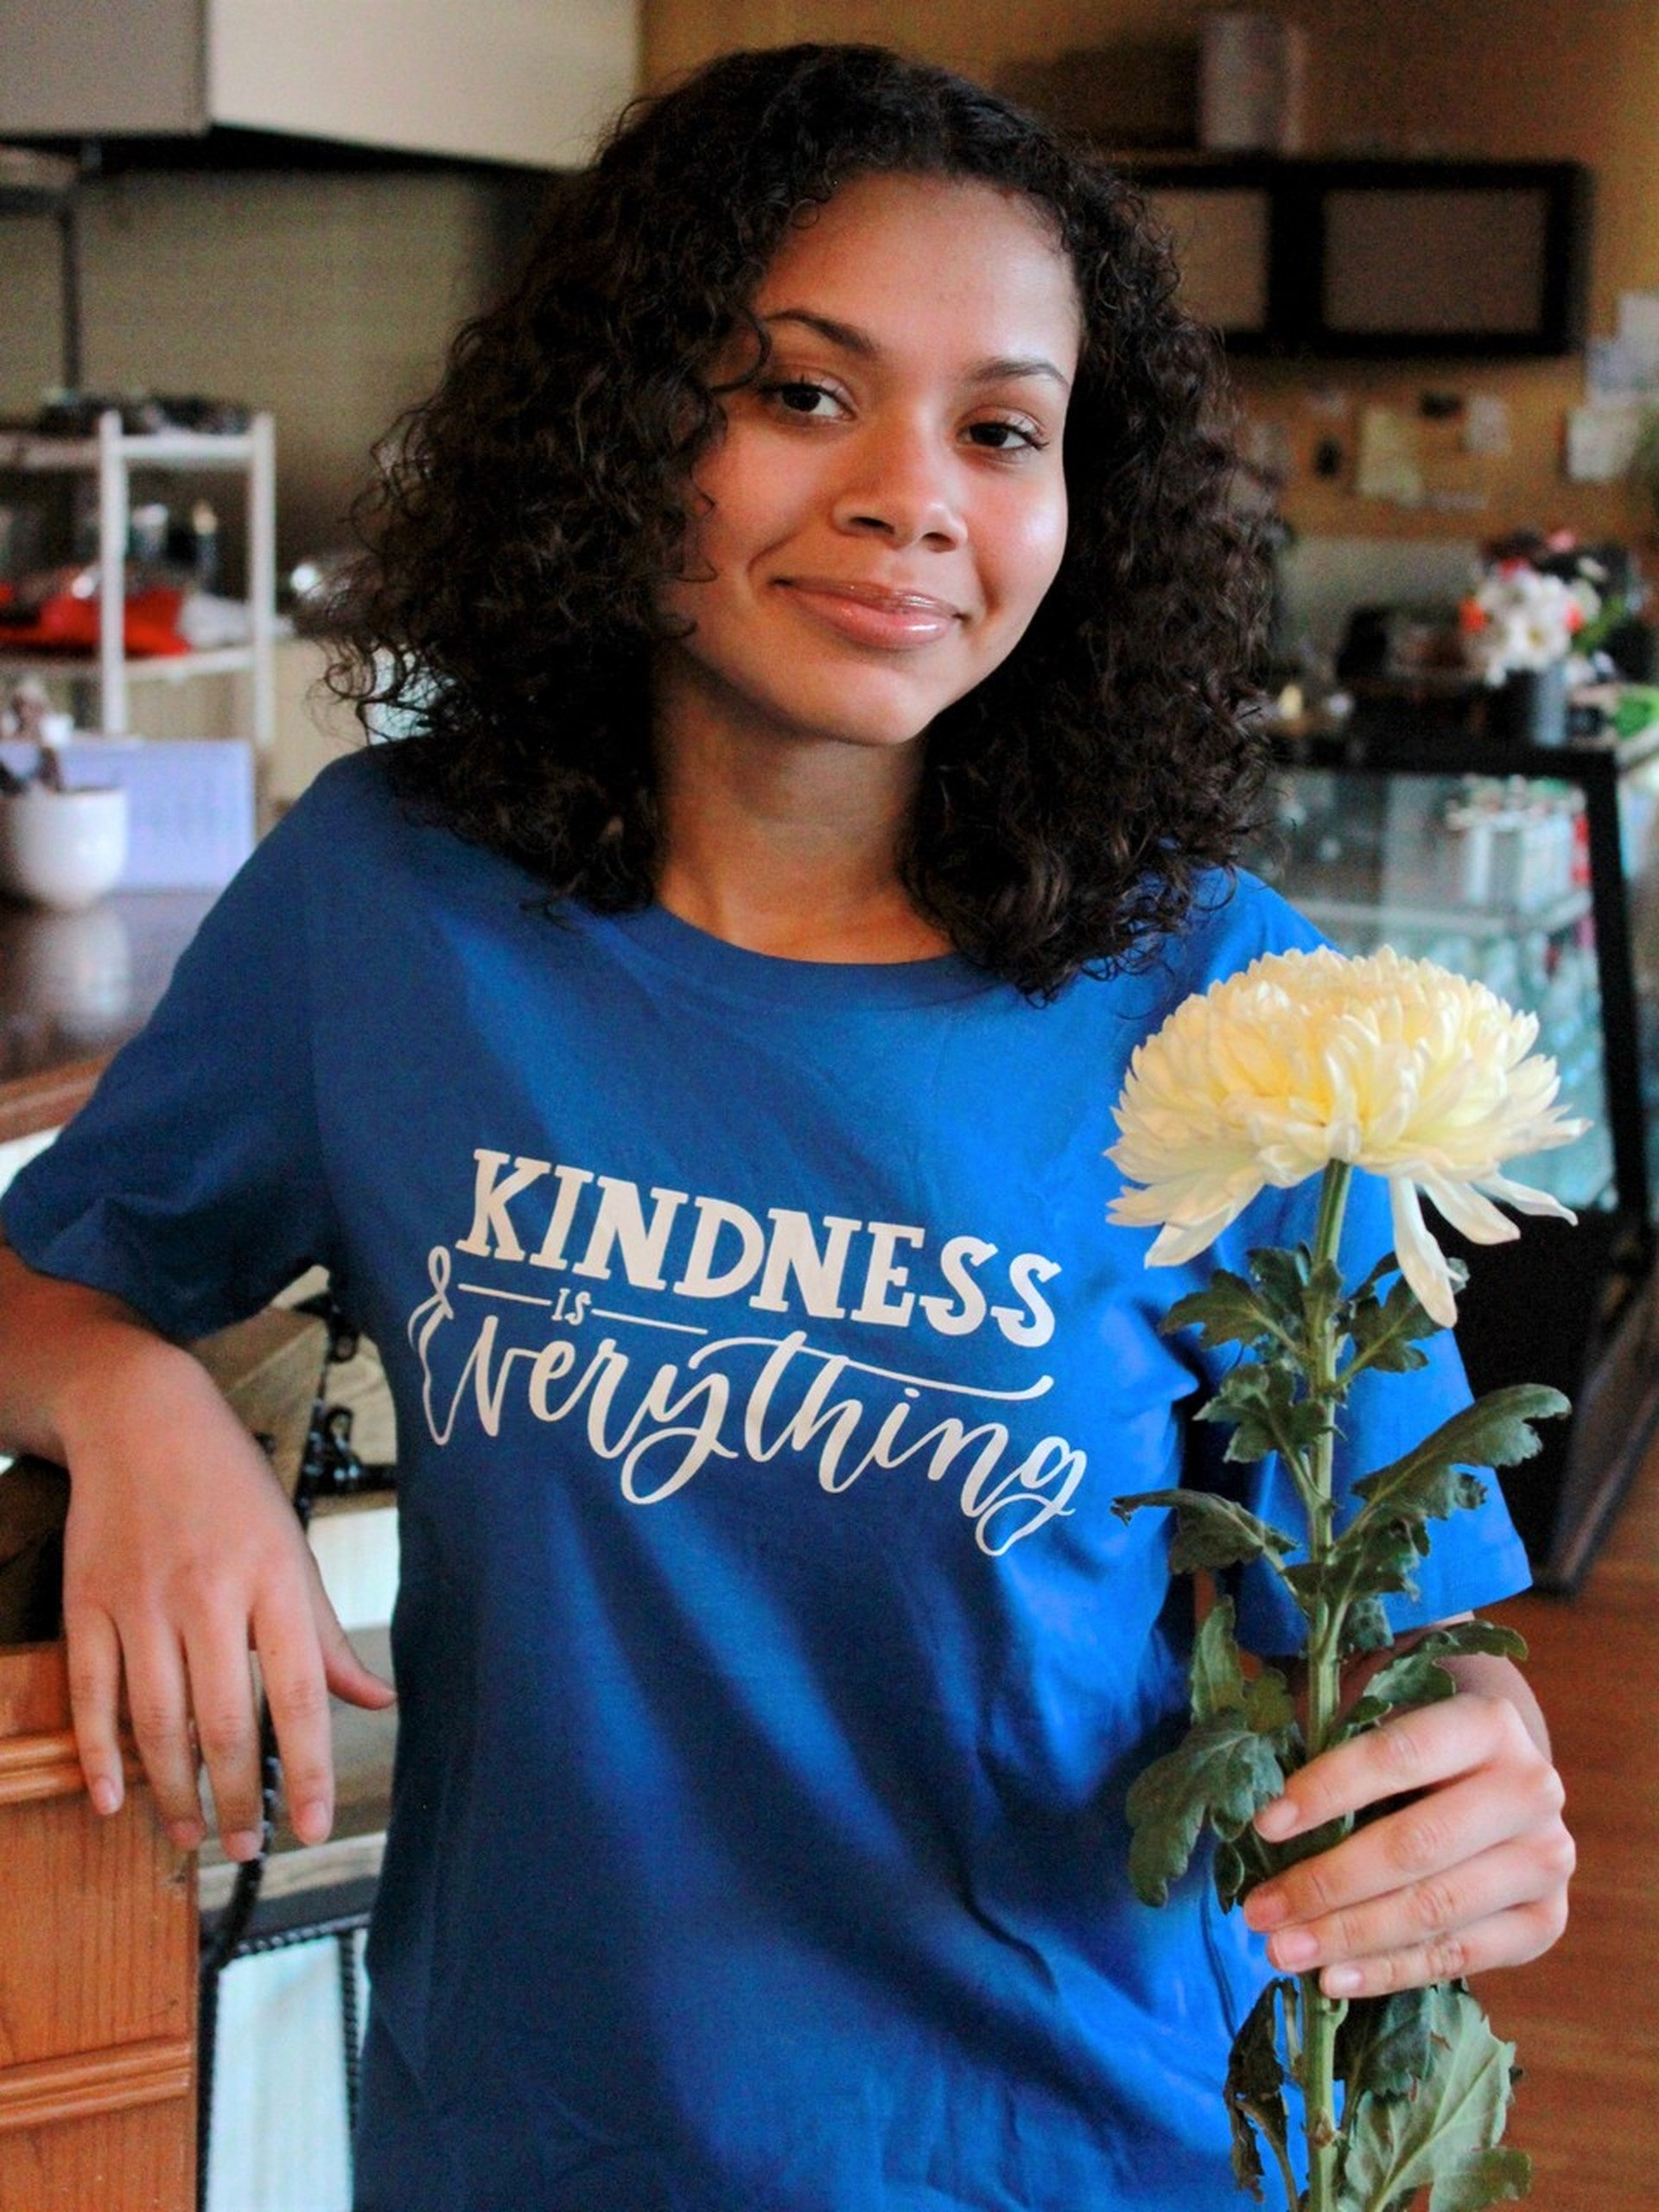 Kindness Is Everything Tee Shirt - Small Things Fair Trade